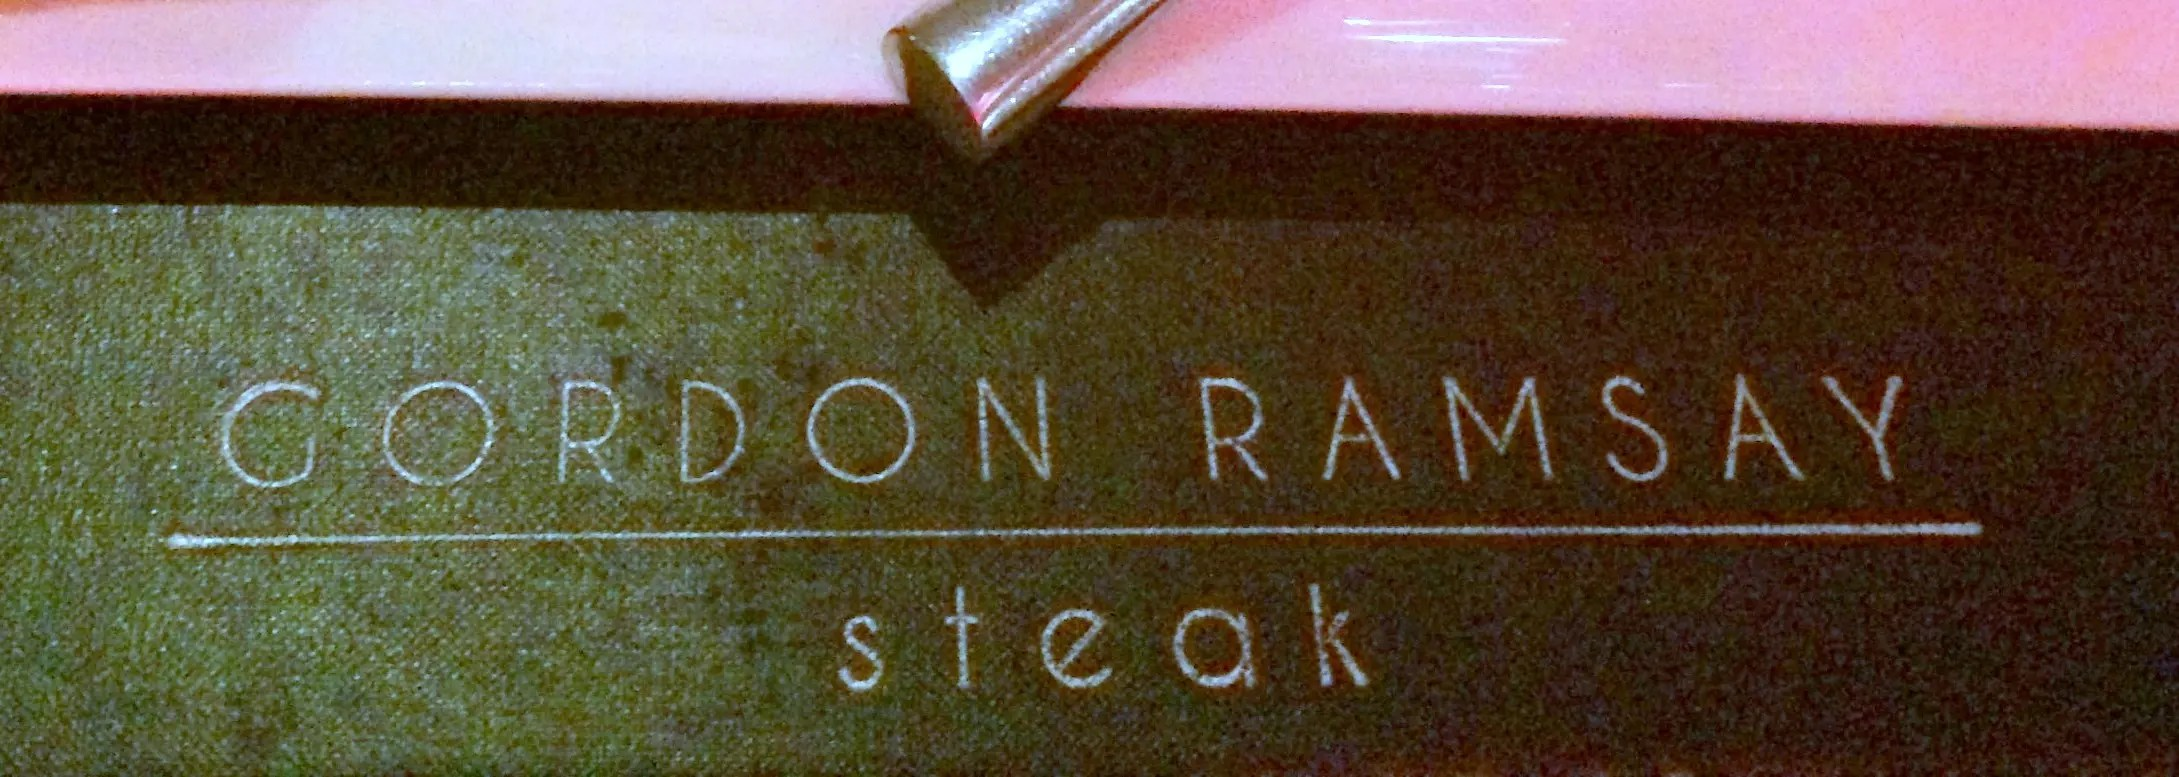 Dinner at Gordon Ramsay's Steak in Las Vegas